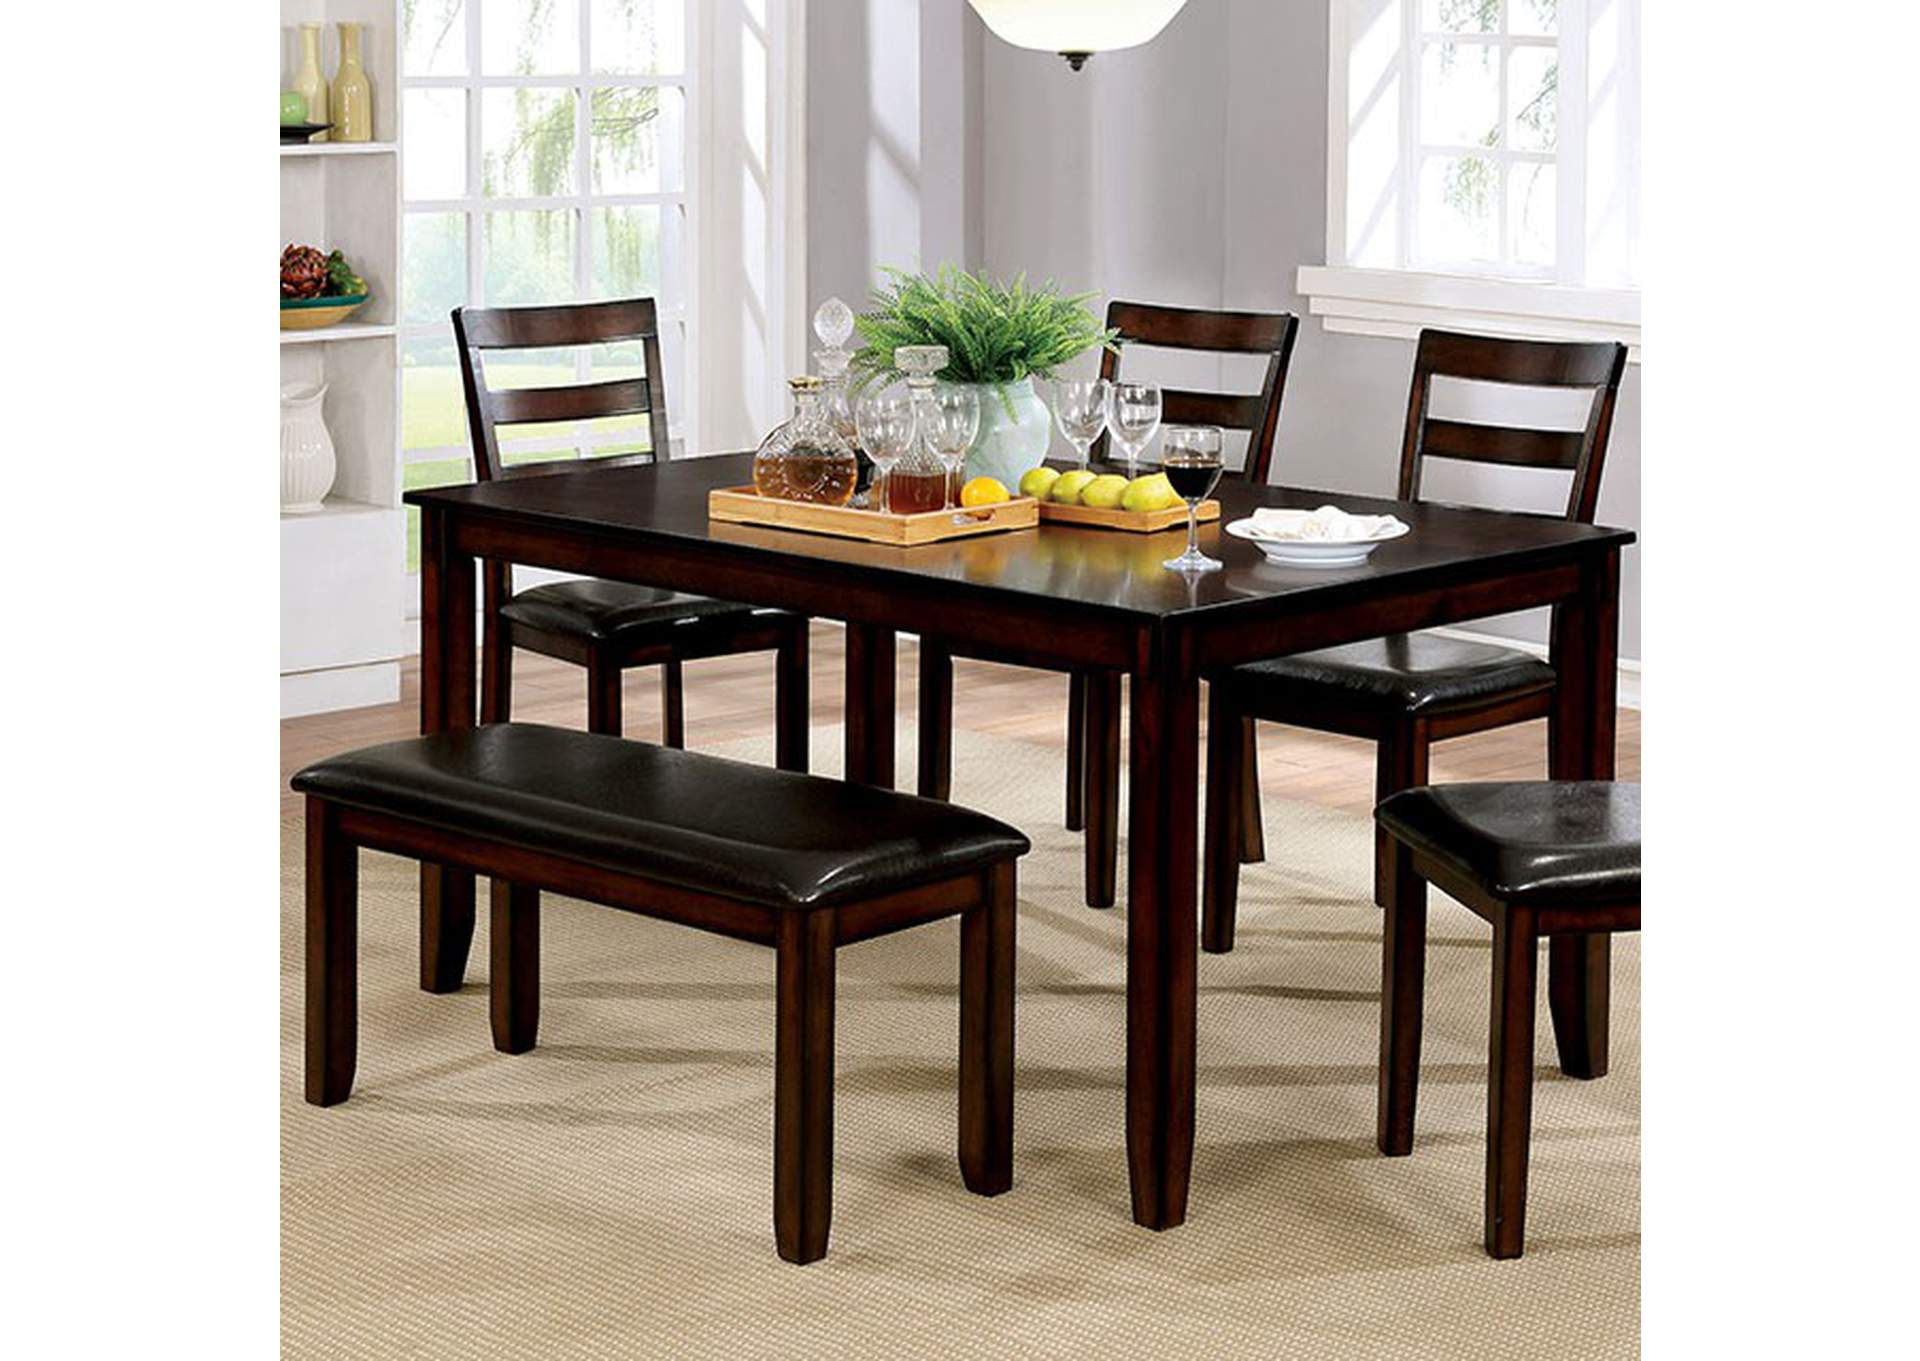 Gloria 6 Piece Dining Table Set,Furniture of America